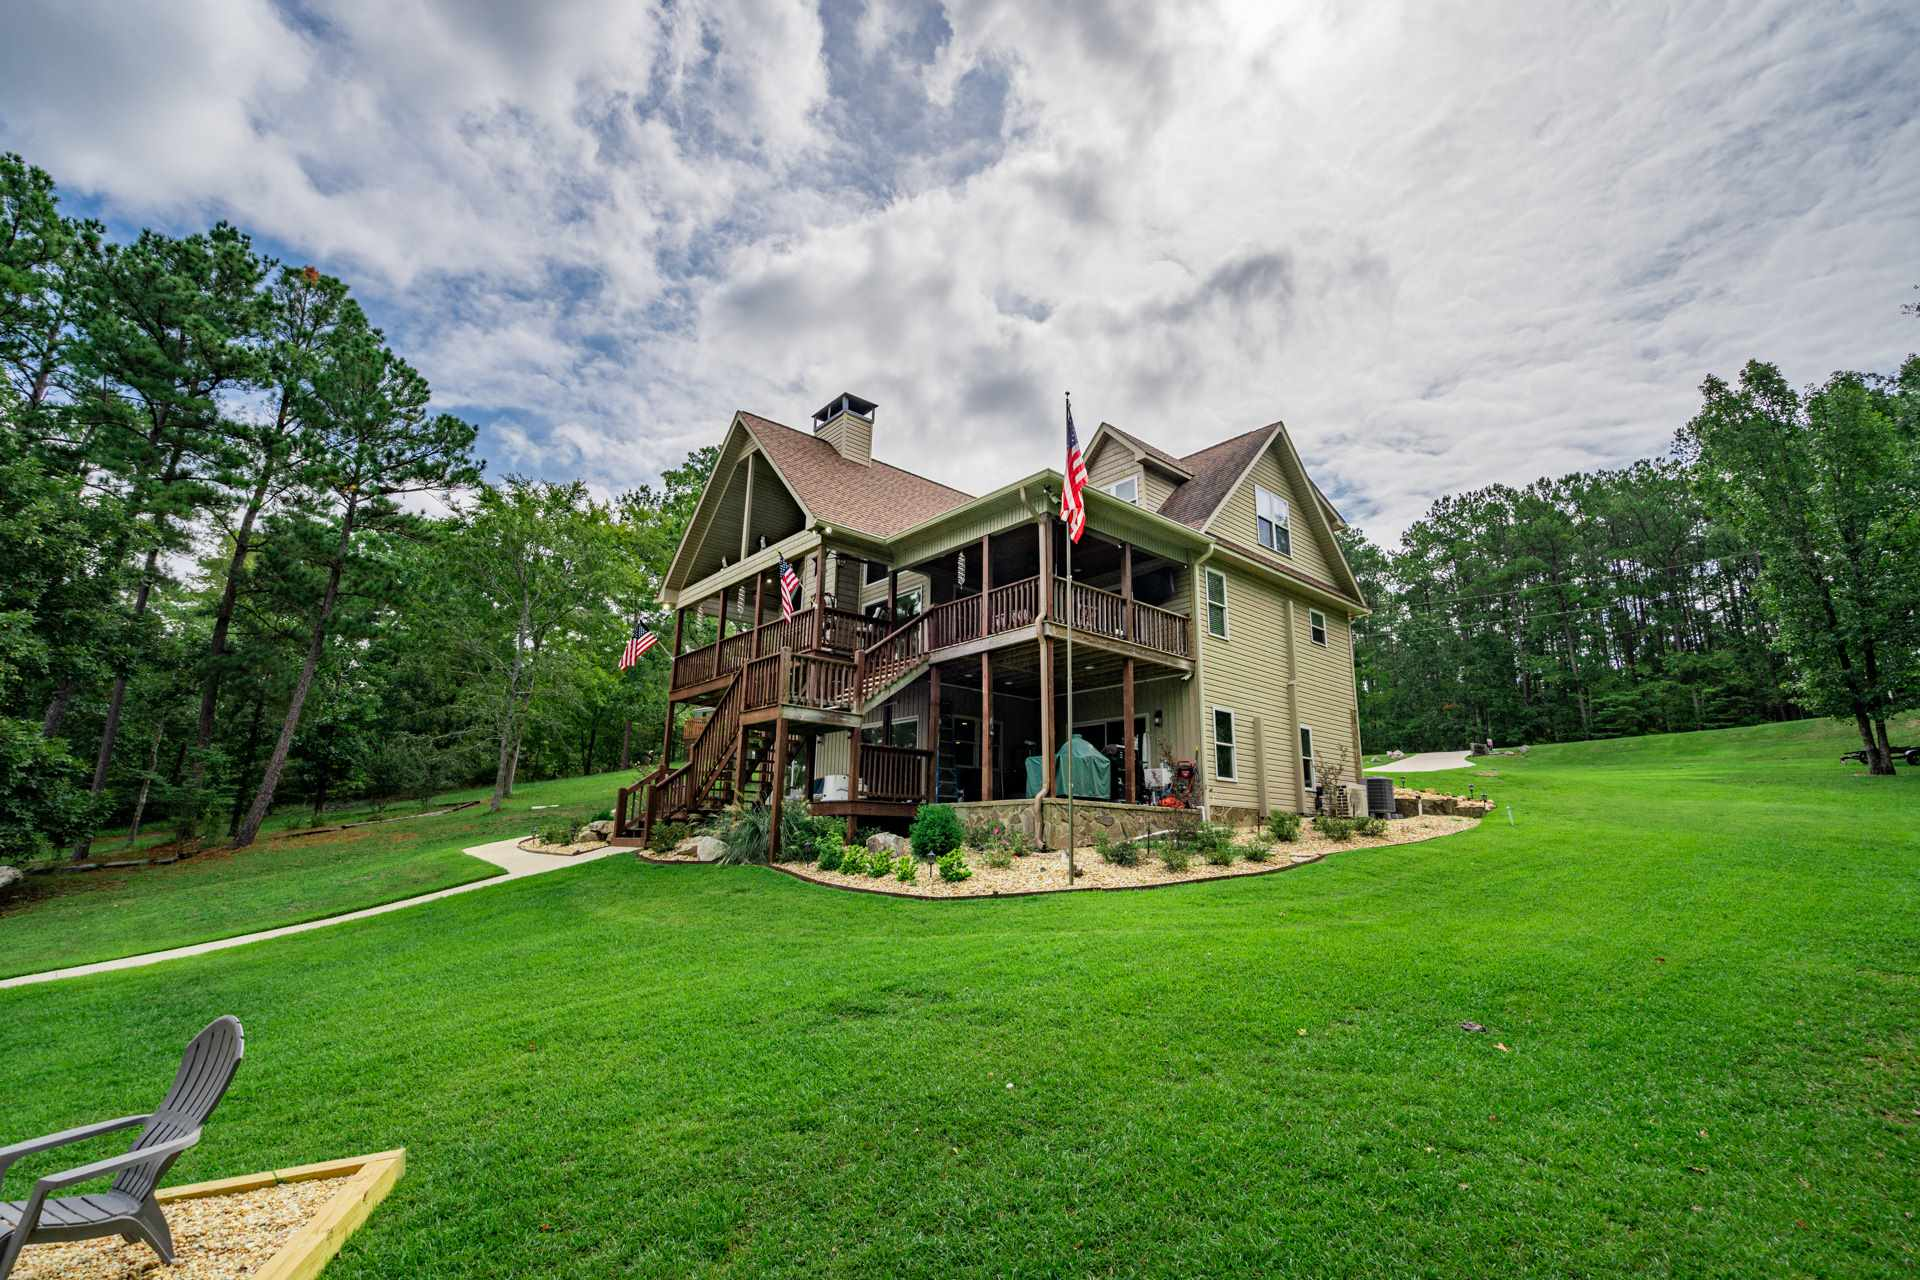 500 RIVER RIDGE TRAIL, one of homes for sale in Lake Sinclair